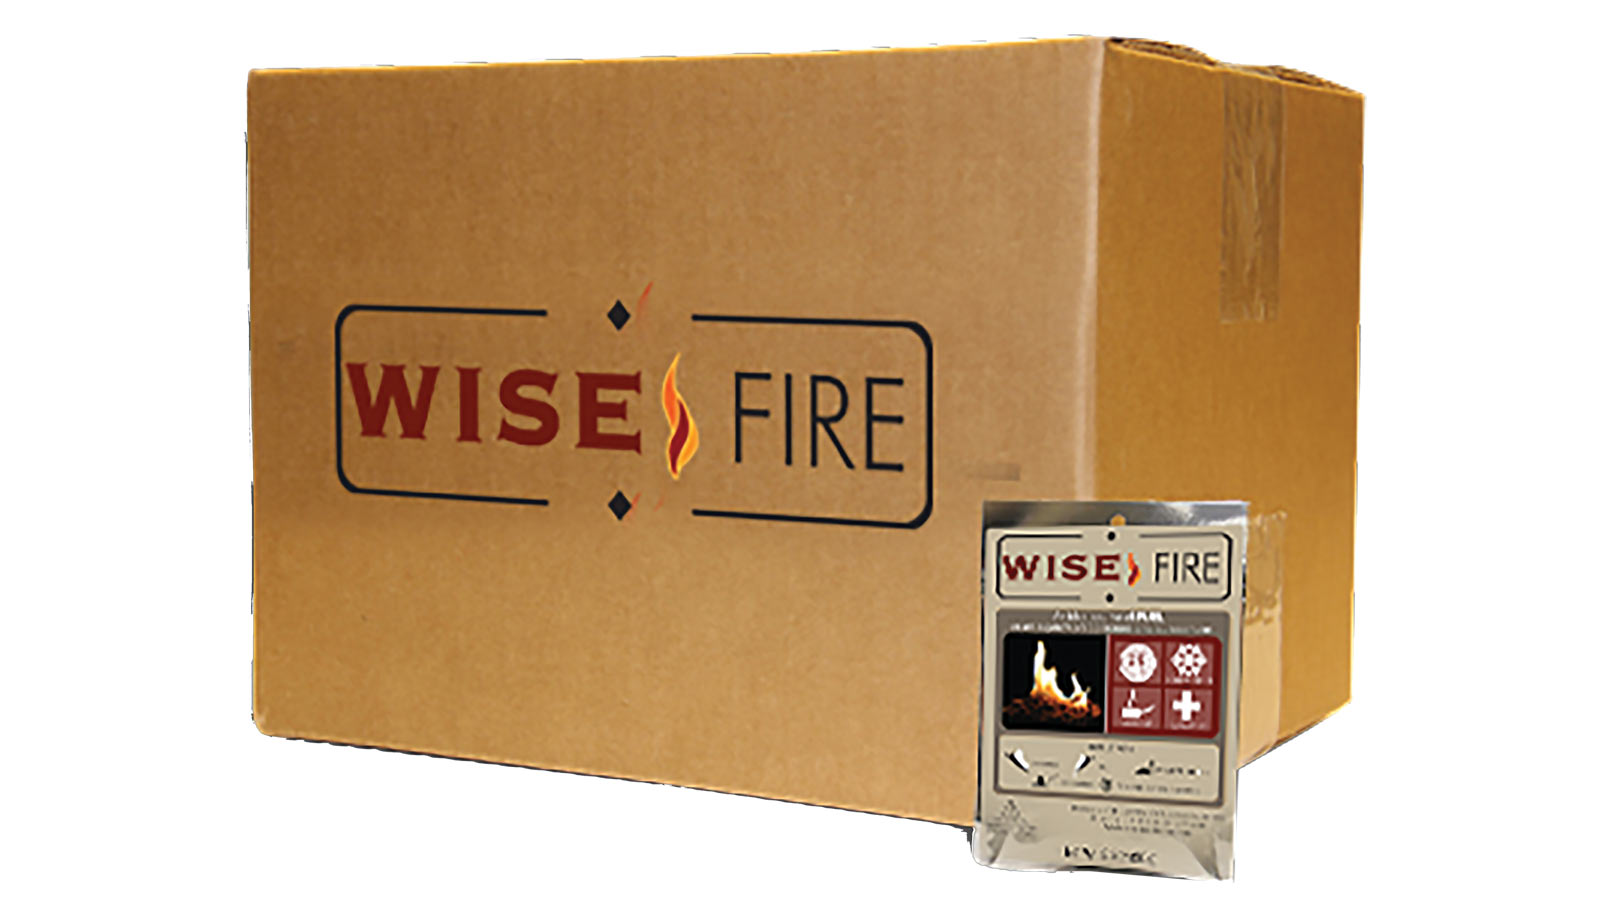 WiseFire Emergency Survival Fire Starter Pouches, 15 Pack